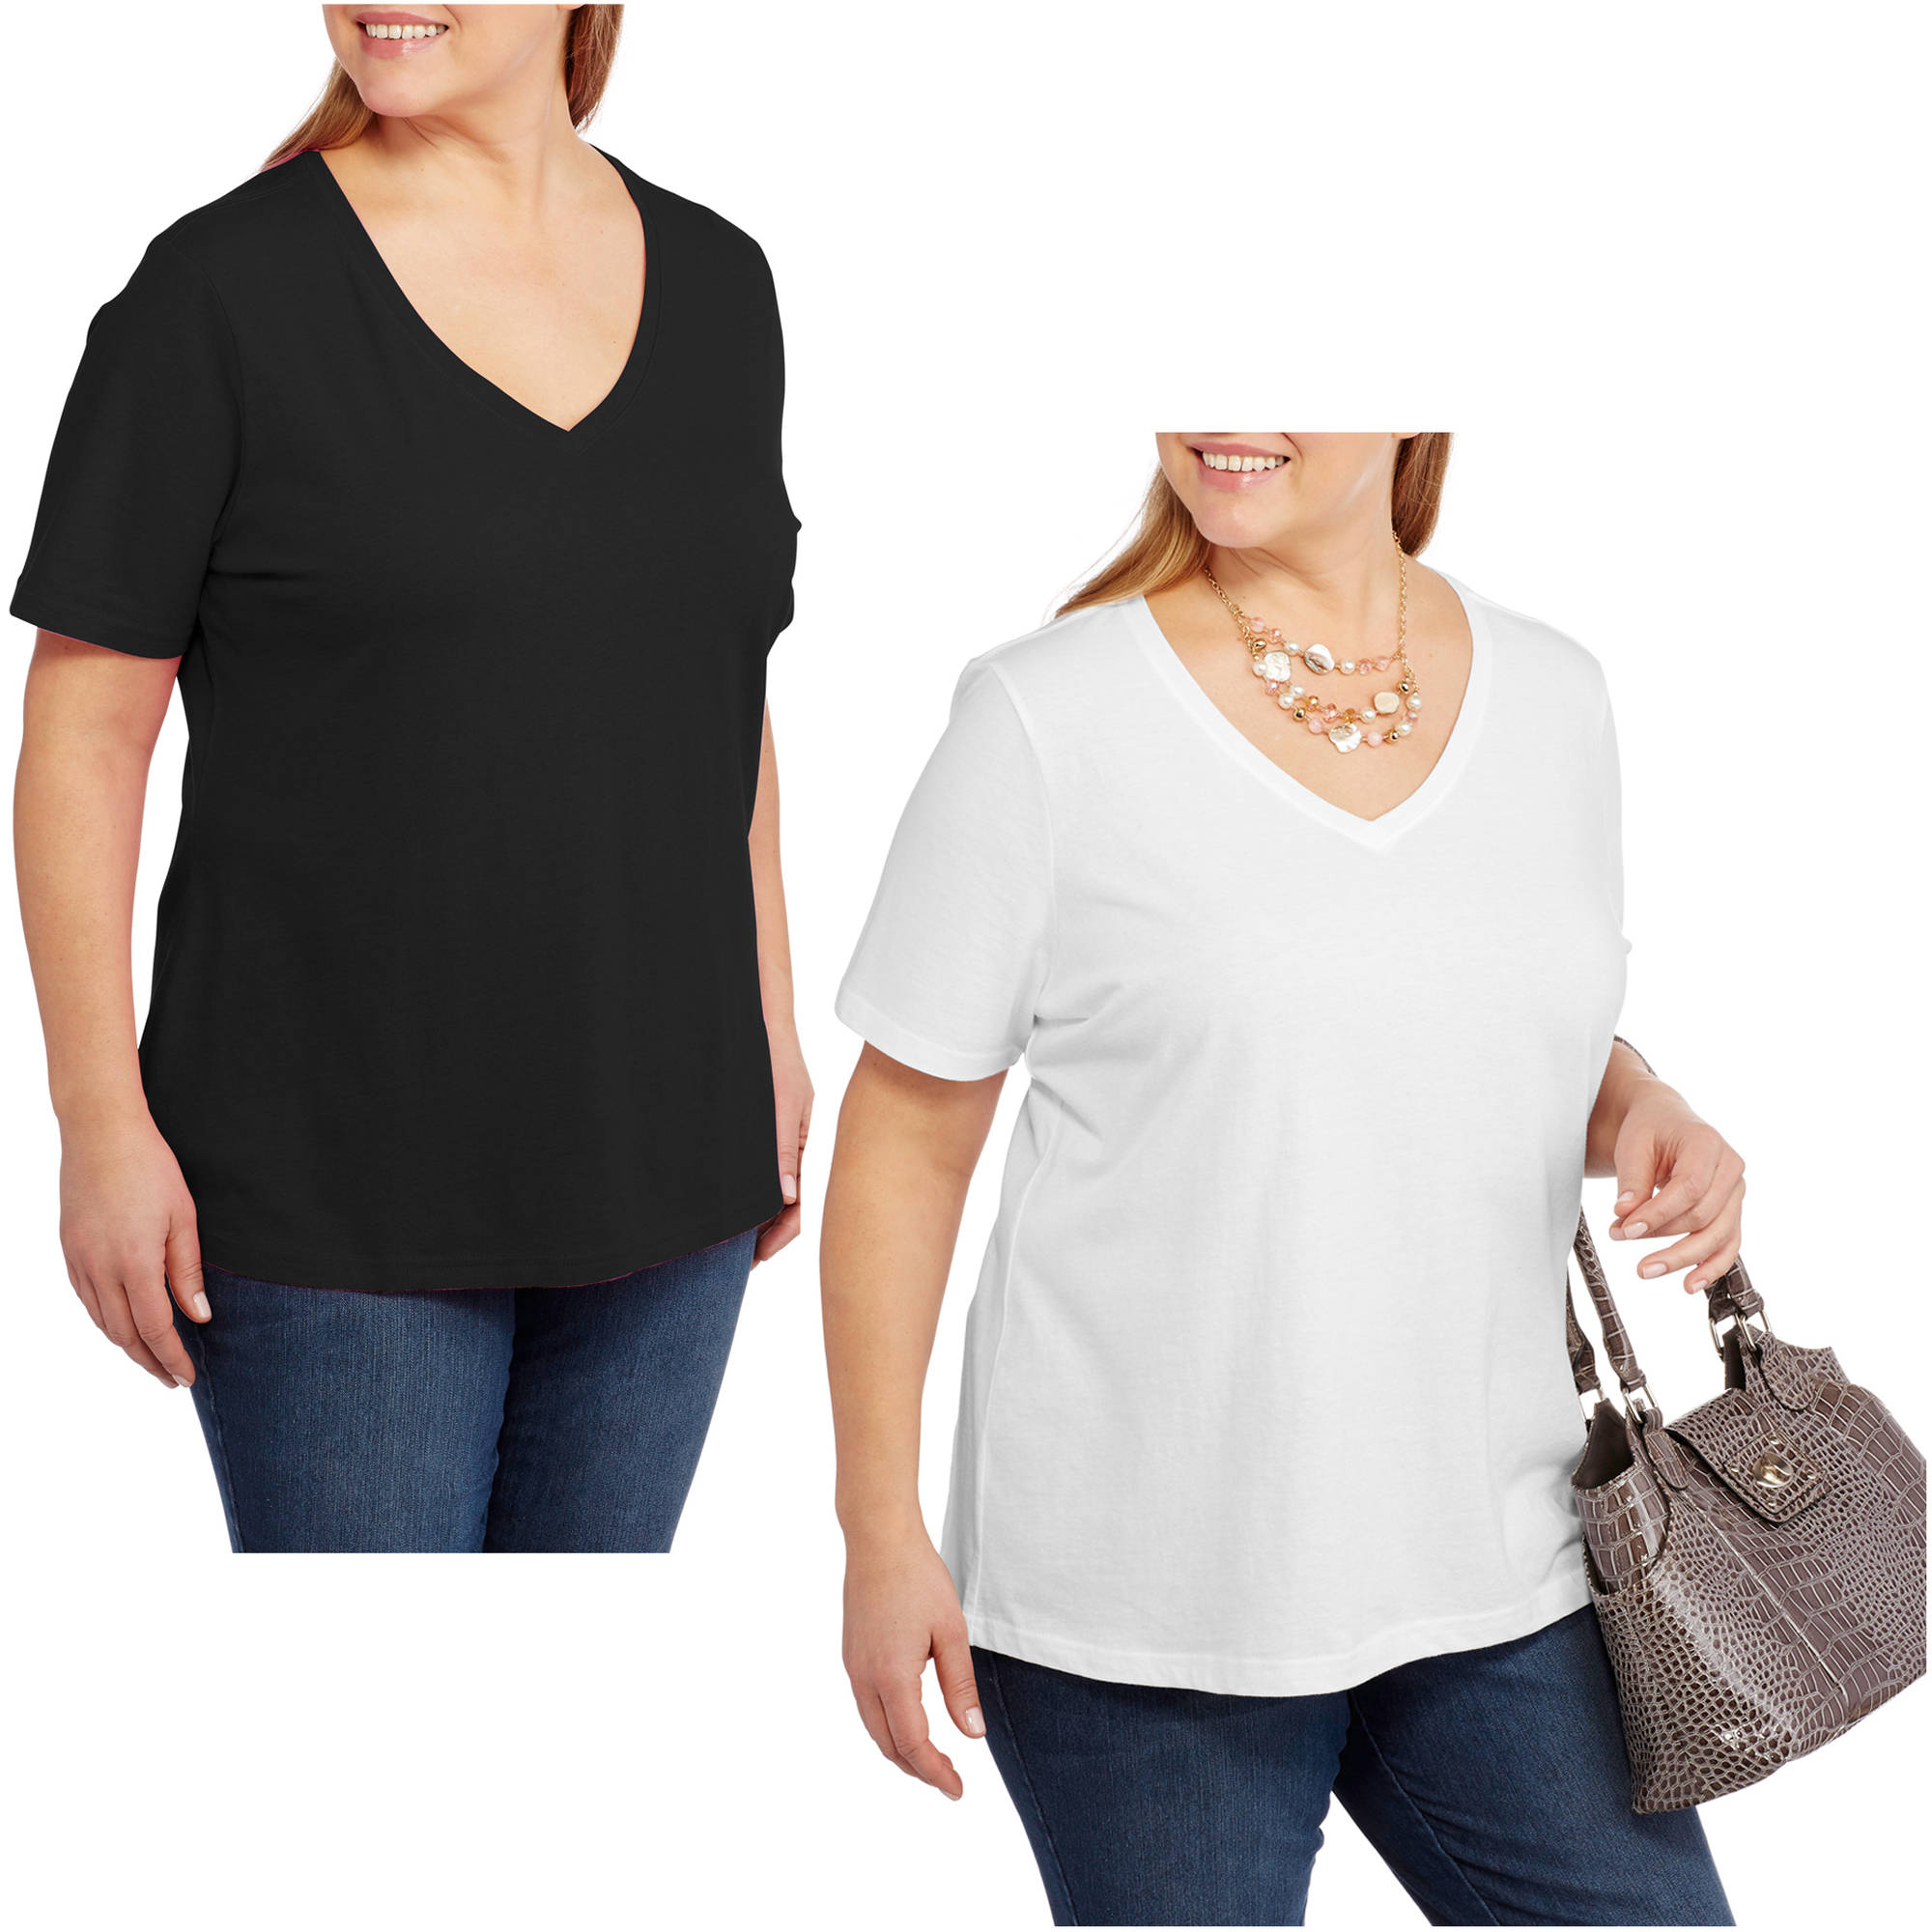 Faded Glory Women's Plus-Size Short Sleeve V-Neck Tee, 2-Pack Value Bundle